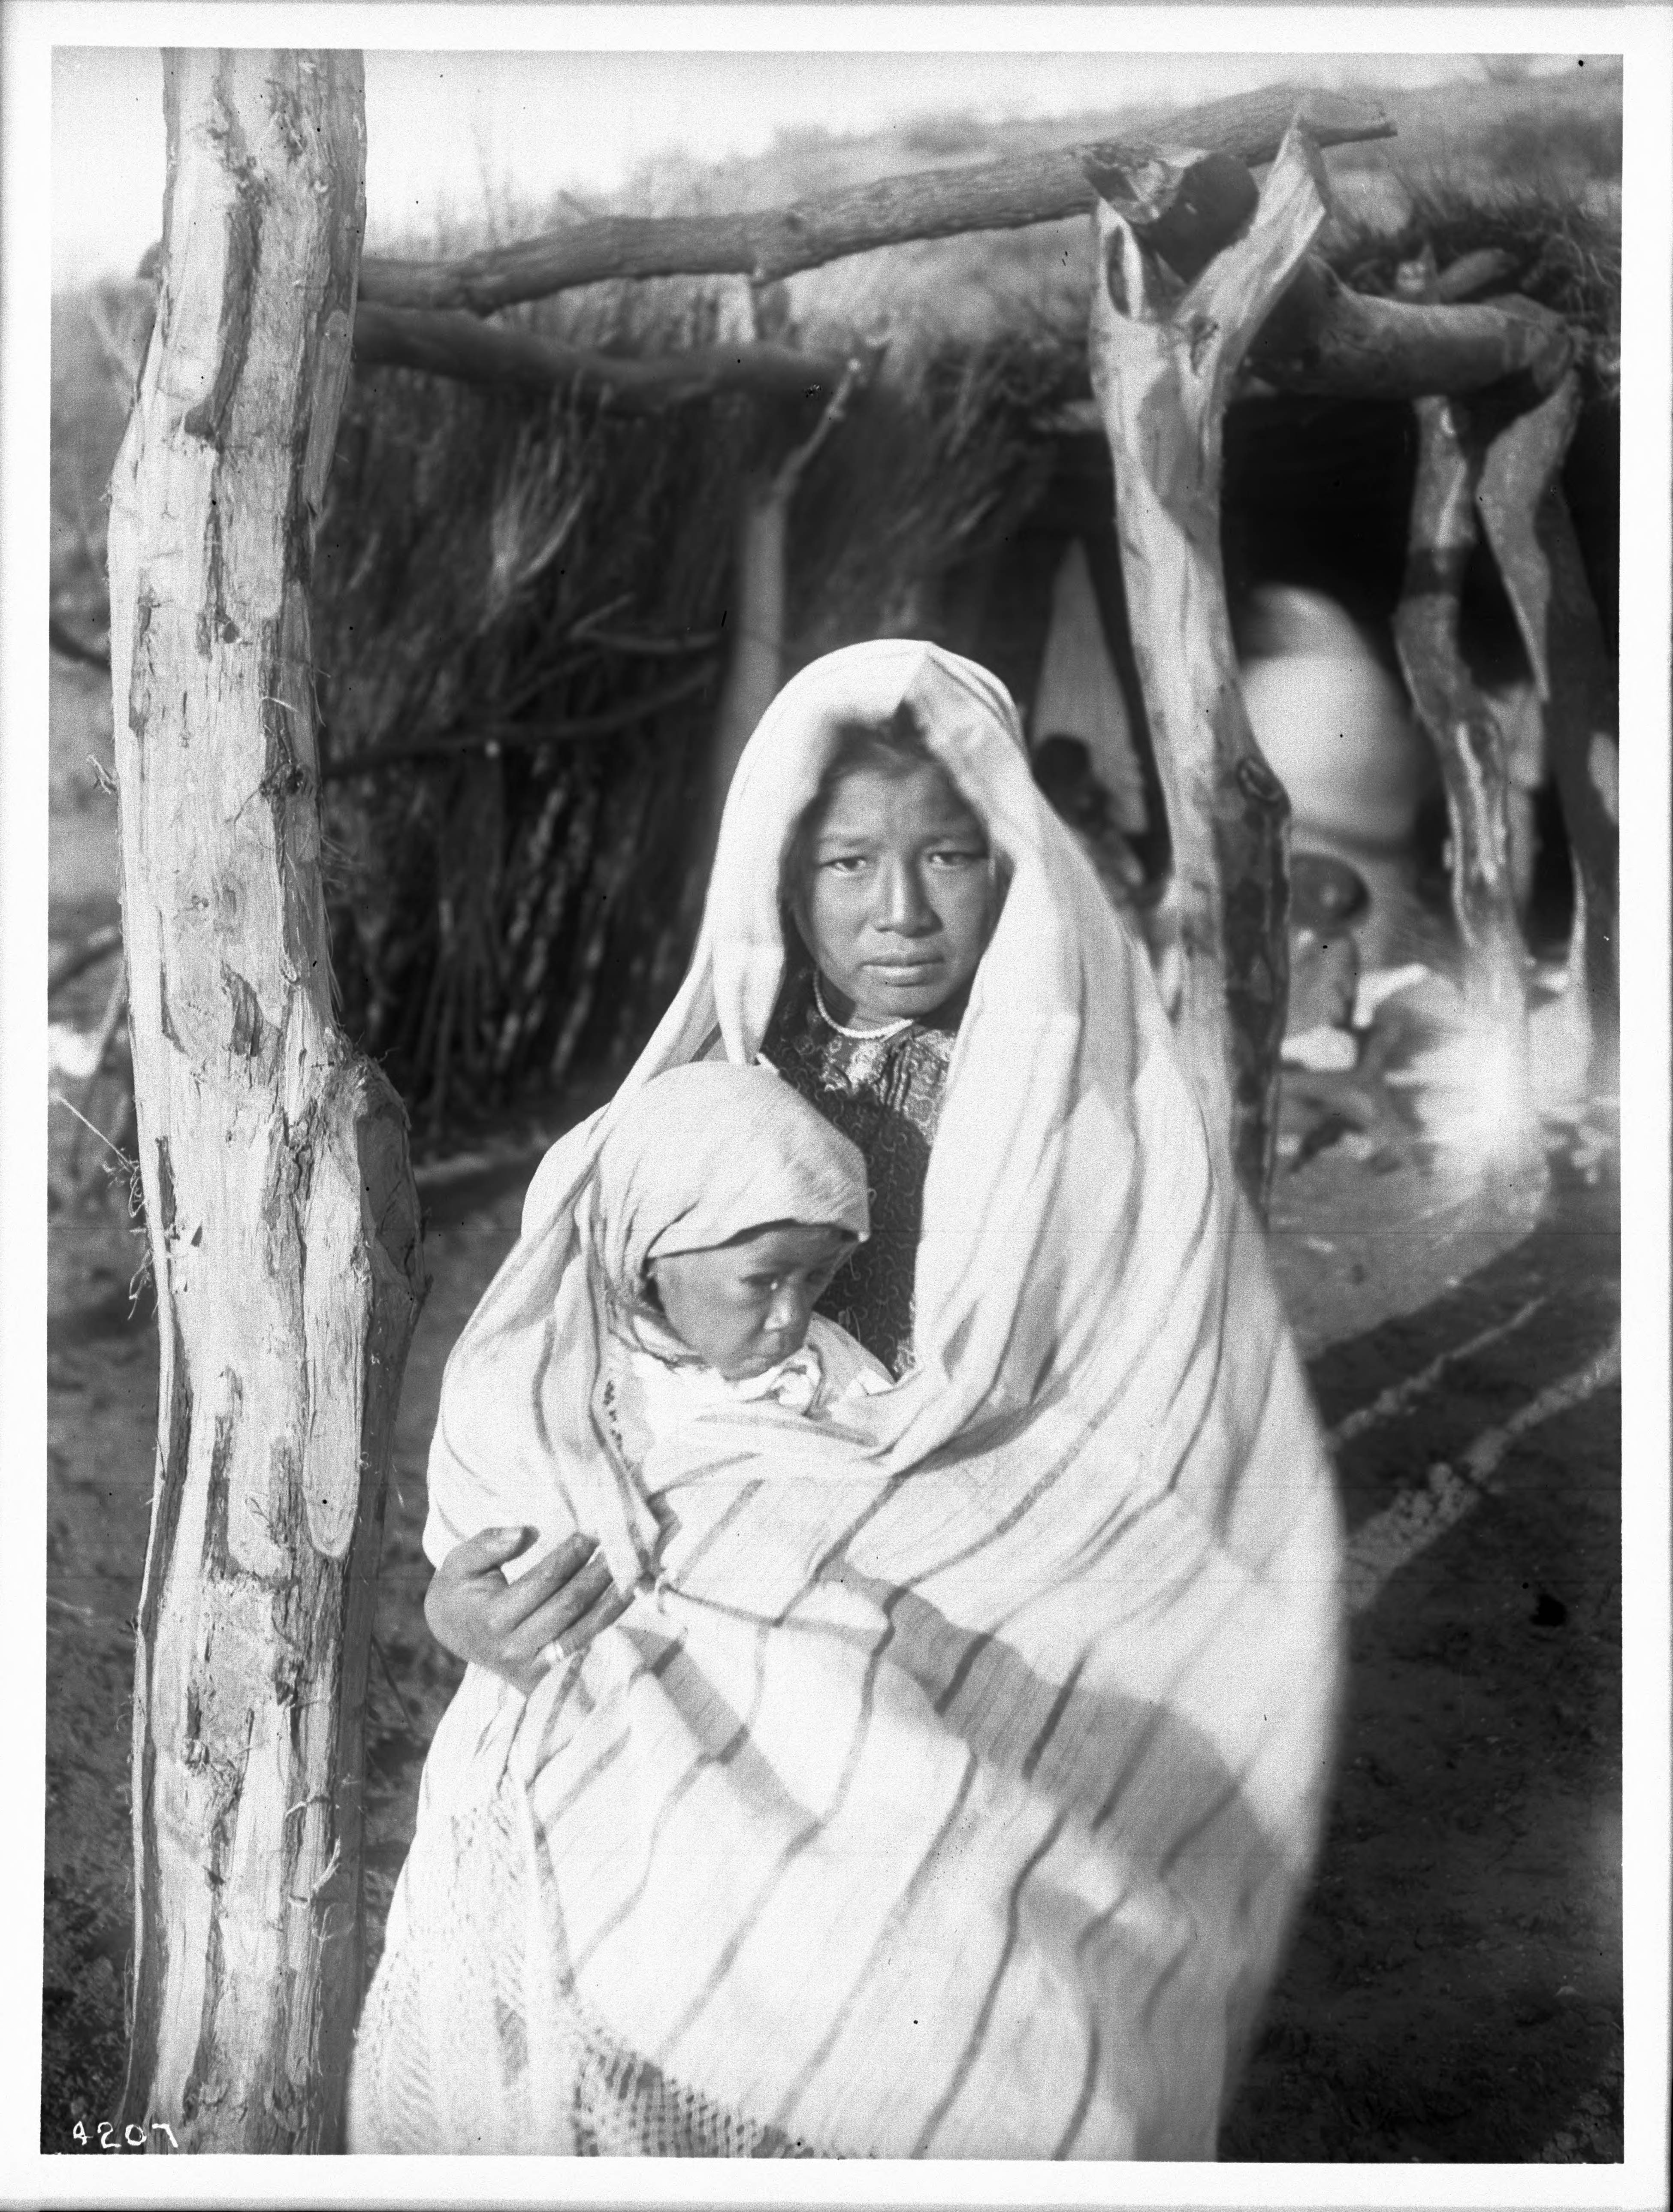 File A Yaqui Indian mother holding a baby  Arizona  ca 1910  CHS 4207 furthermore Funny marriage t shirts and gifts 235988834486752363 additionally I0000d3F2OFDVE4k besides 4 Mexican Immigrant Kids Cheap Robot Beat Mit further Dog The Bounty Hunter n 4722839. on oscar mexican in arizona